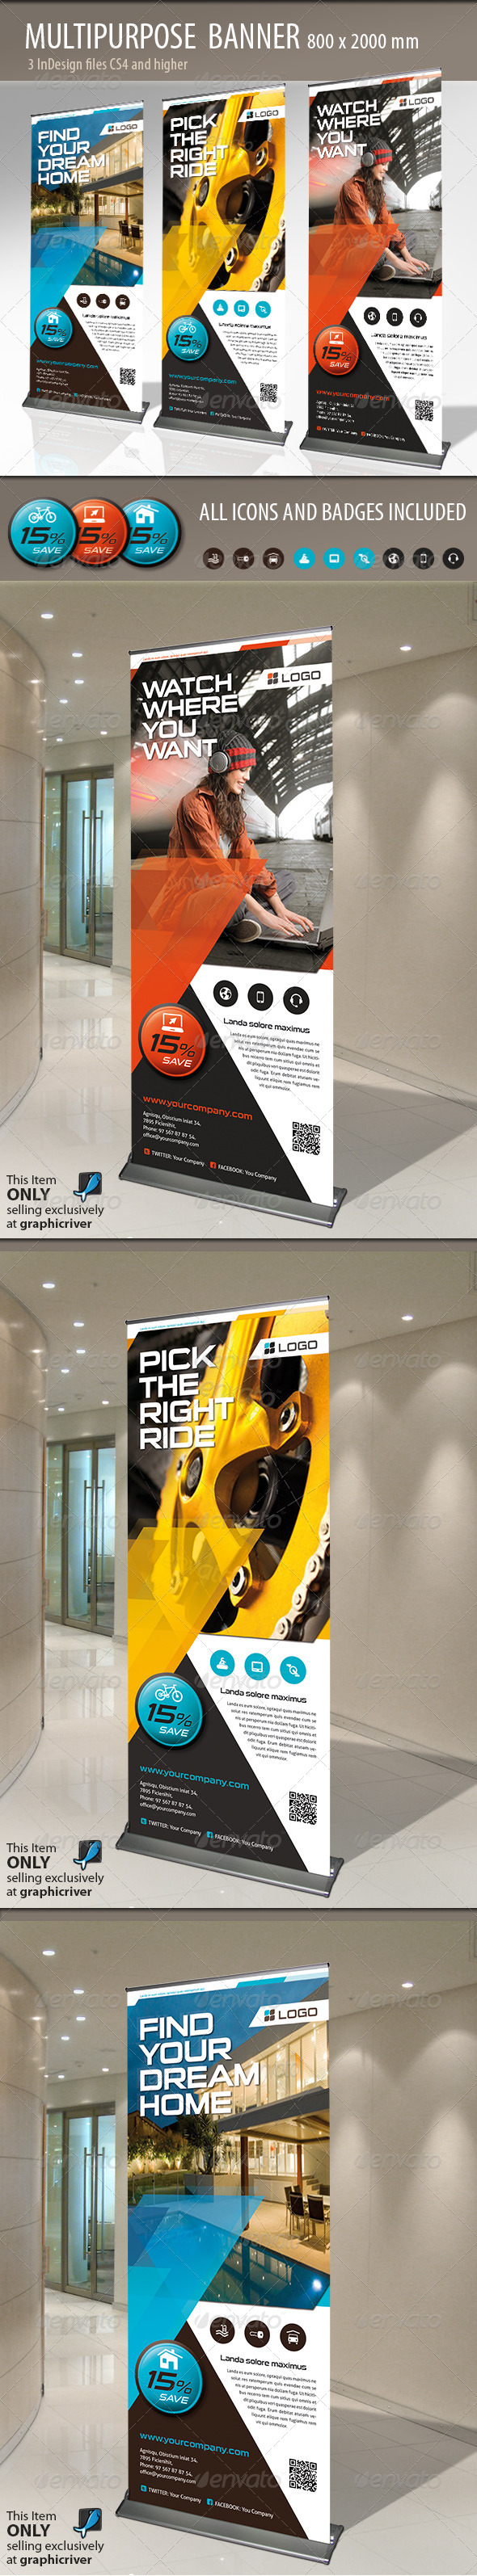 GraphicRiver Multipurpose Banner or Rollup 4839298